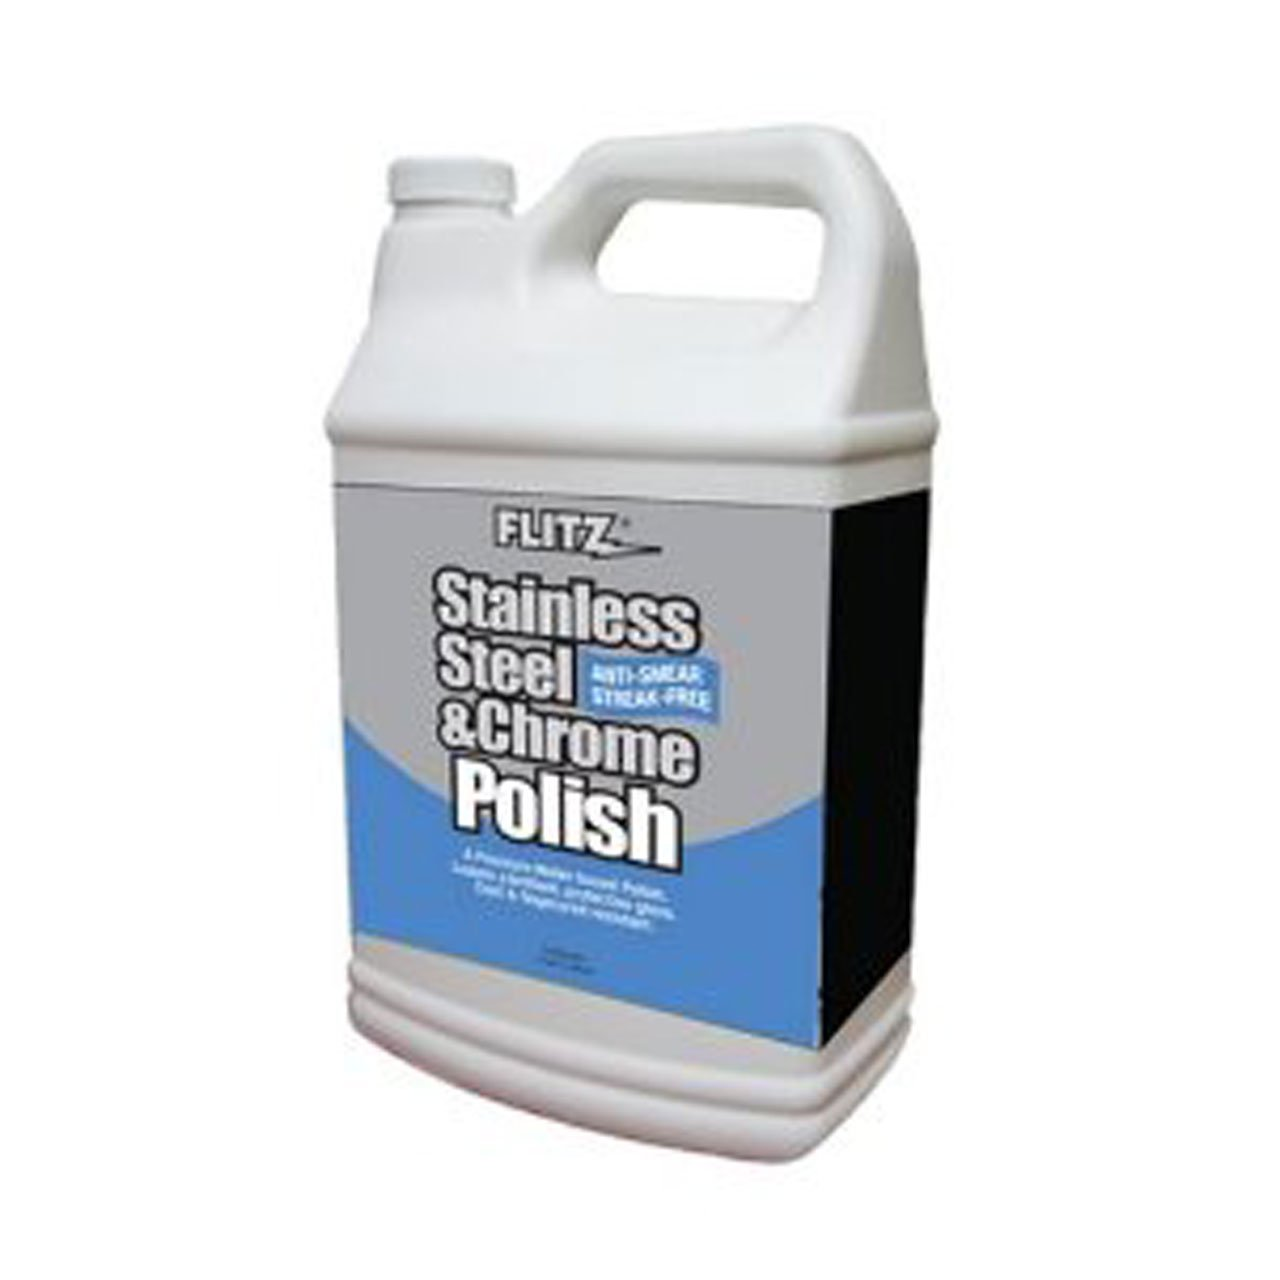 Flitz SS 01310 Stainless Steel and Chrome Polish, 1-Gallon, Small